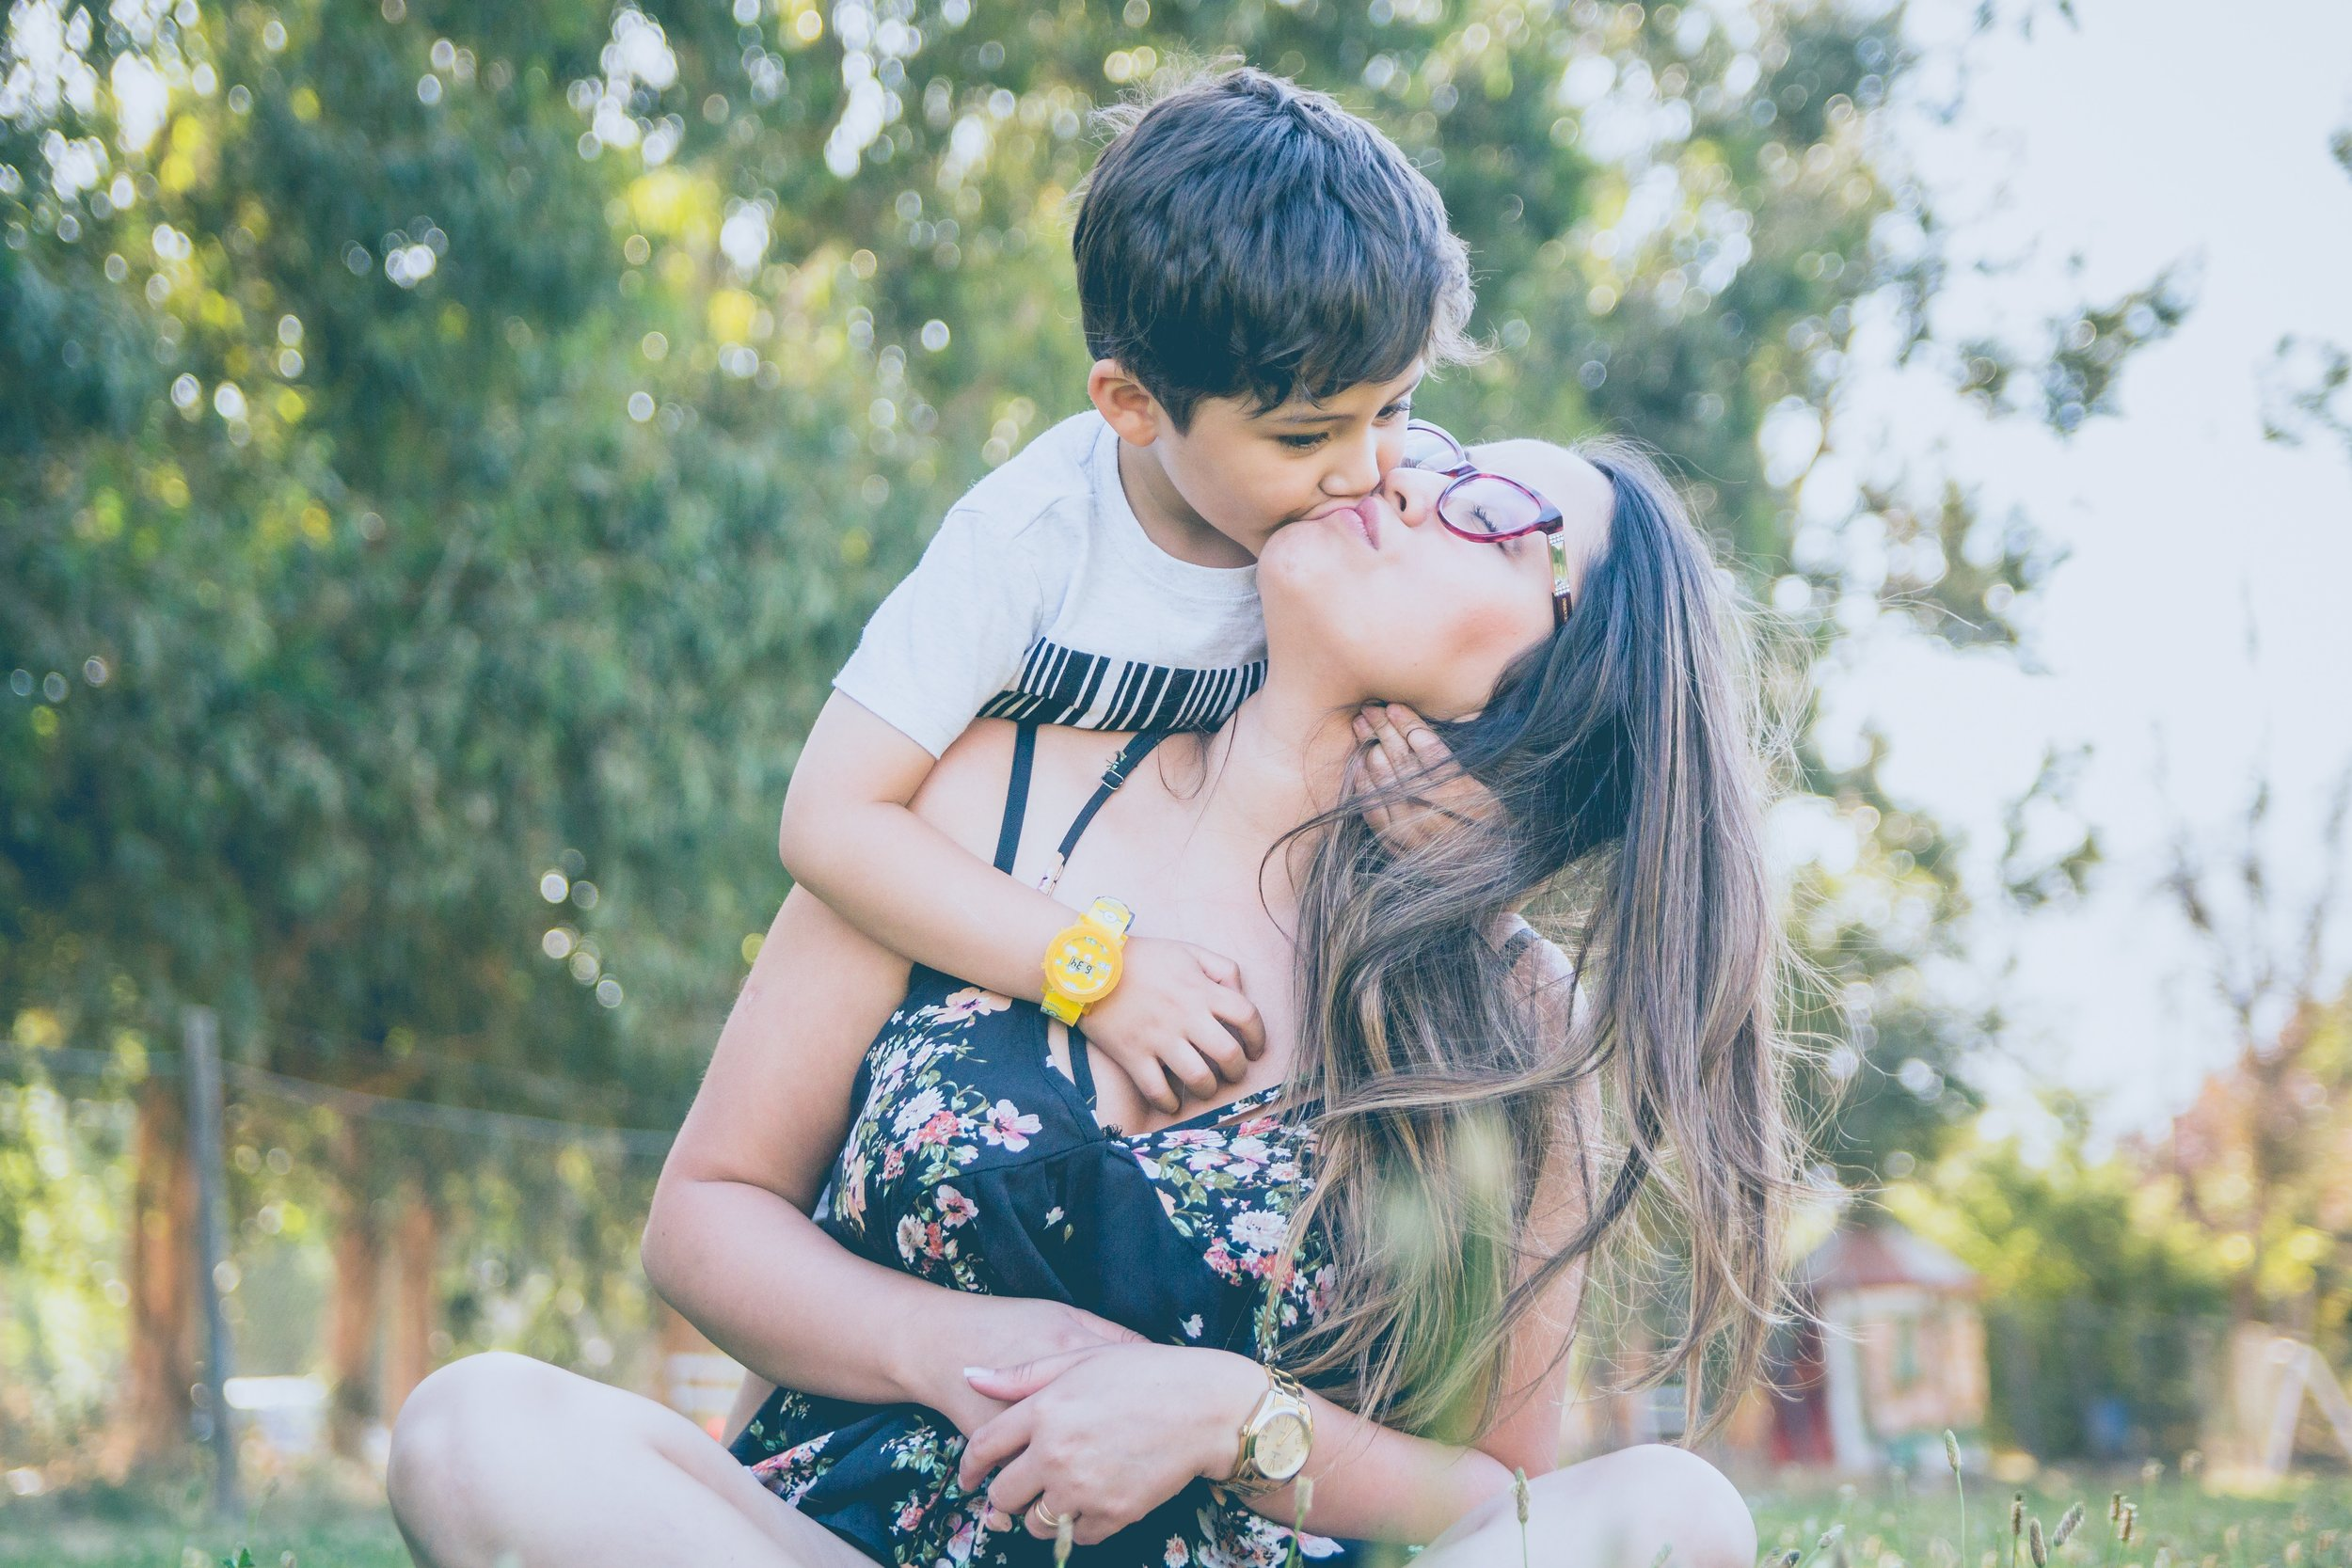 No one said being a mom is easy. But it's hands-down the most rewarding job you'll be blessed enough to have in this lifetime. Here's why being a mom is the best thing EVER! >> http://www.happyhearthappyhome.com/blog/2019/5/7/why-being-a-mom-is-the-best-thing-ever